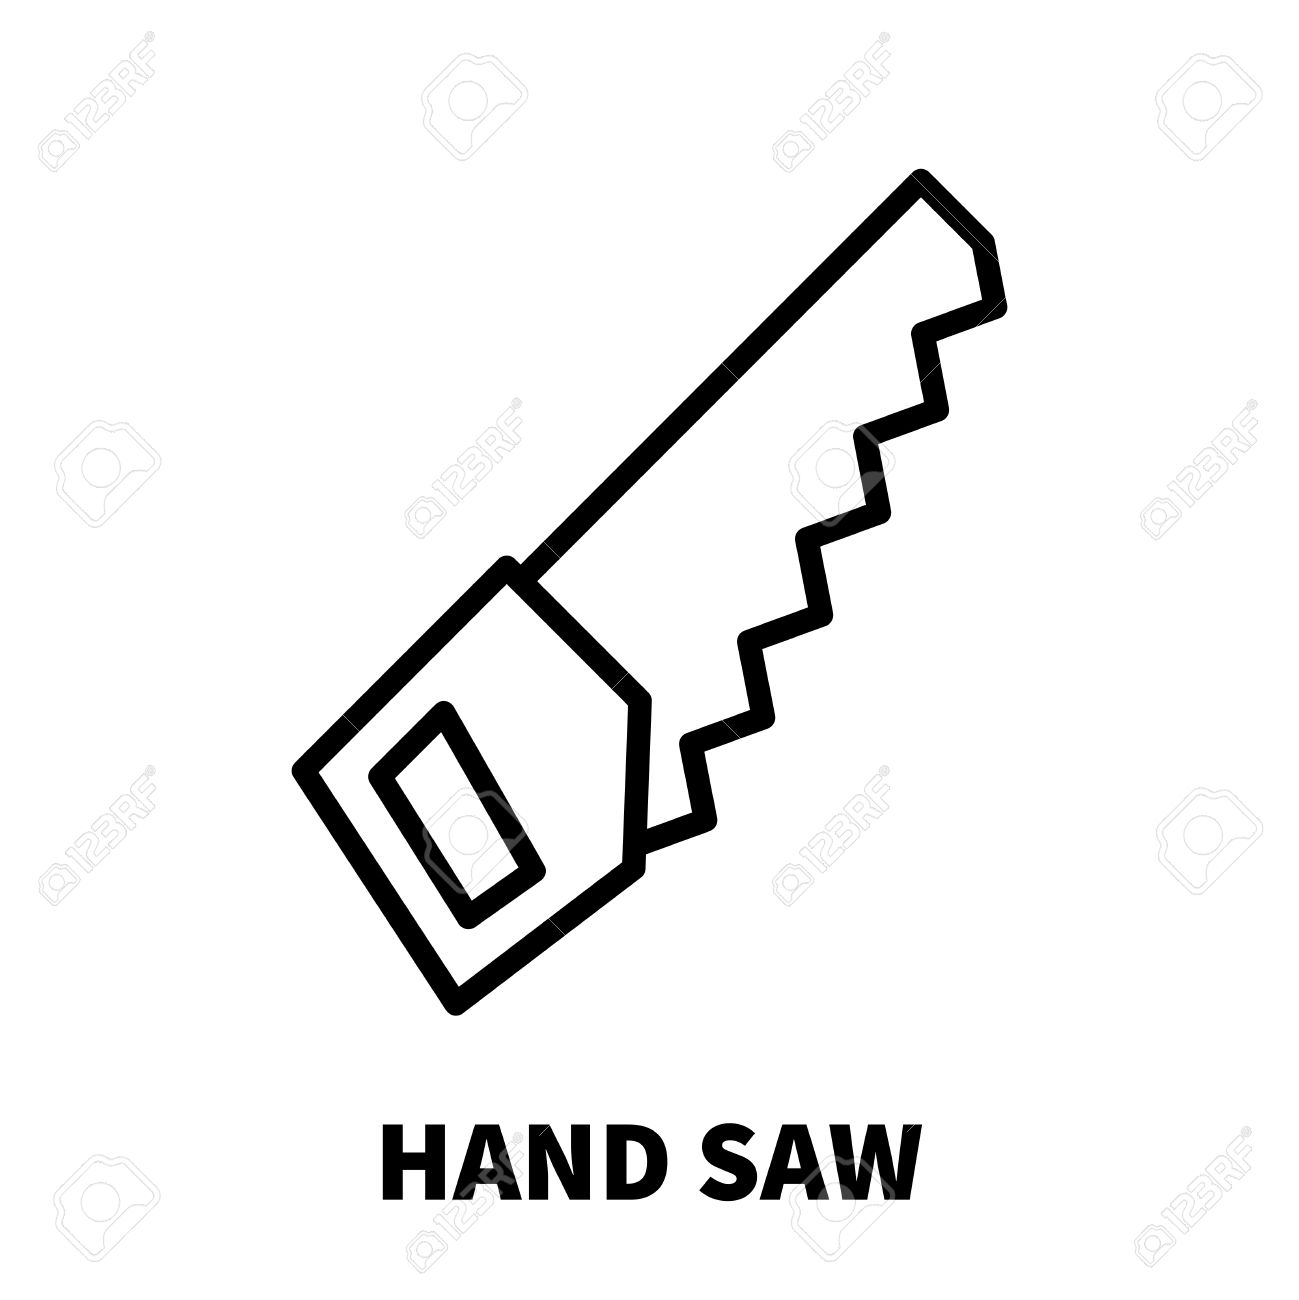 Hand saw icon or logo in modern line style high quality black hand saw icon or logo in modern line style high quality black outline pictogram for ccuart Image collections